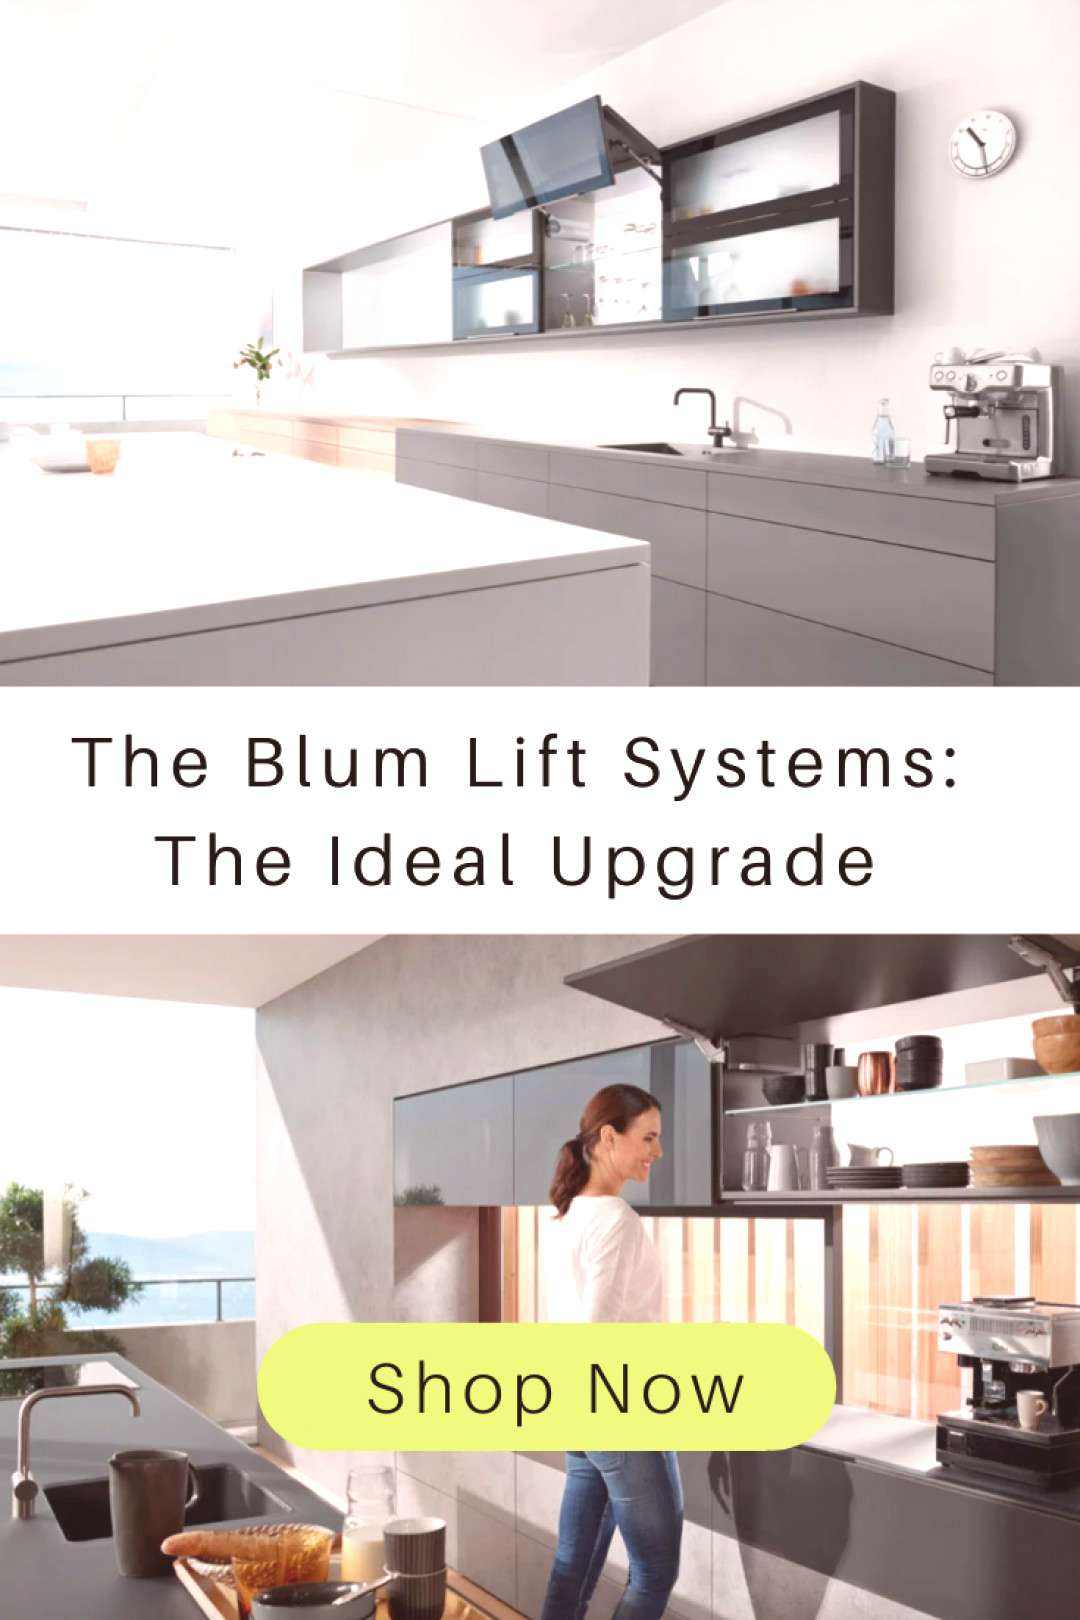 The Blum Lift Systems The Ideal Upgrade When you decide to incorporate one of the Blum Aventos Lif